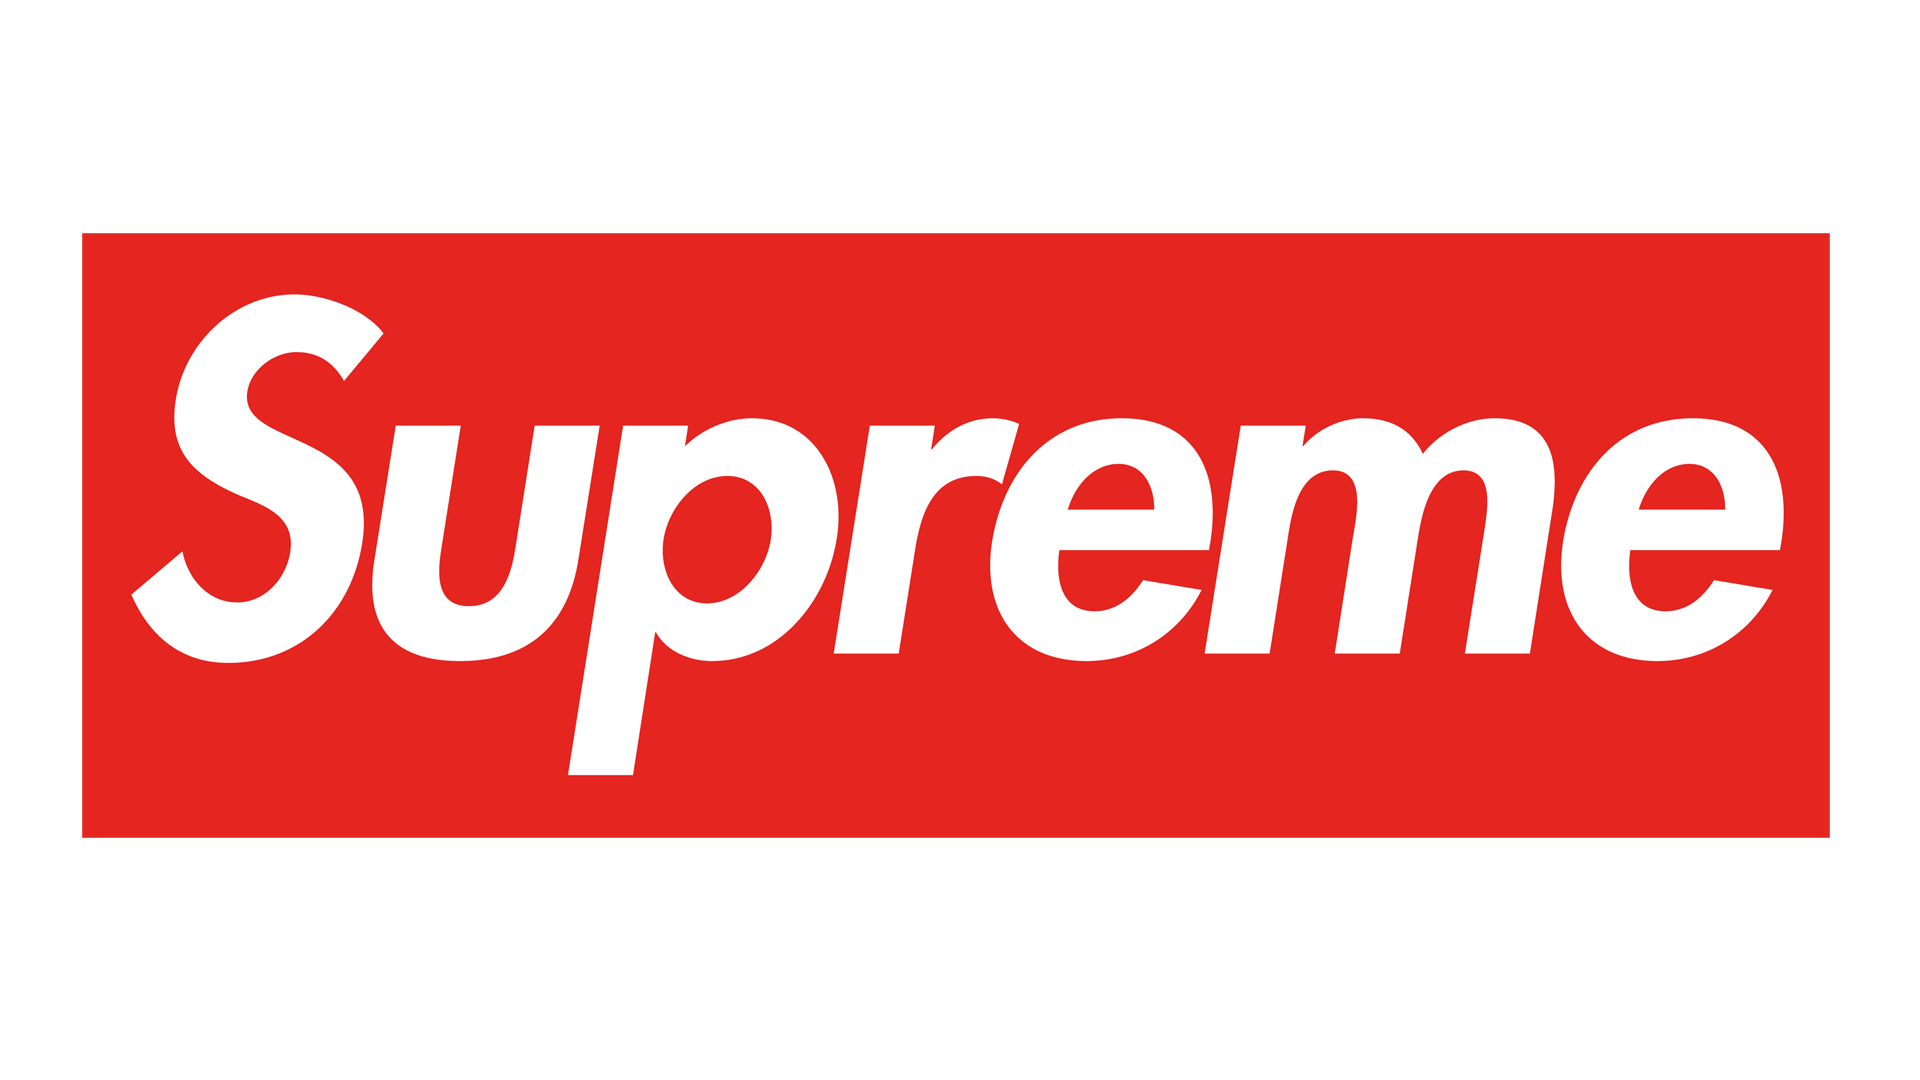 Supreme logo png. Symbol meaning history and